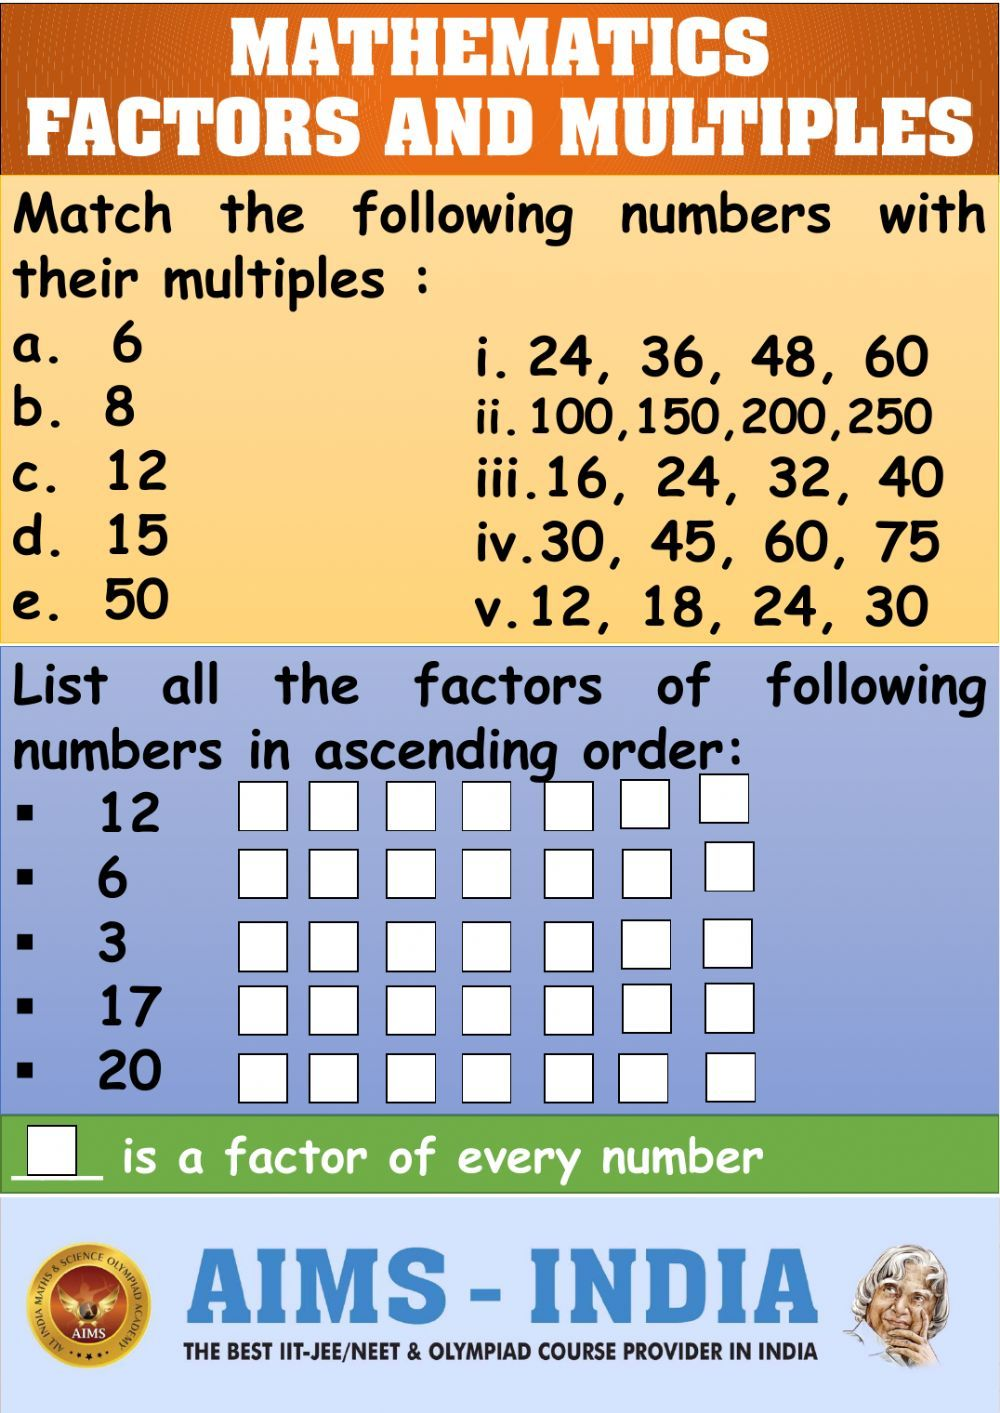 Online Worksheet For You Can Do The Exercises Online Or Download The Worksheet As Pdf In 2021 Factors And Multiples Math Number Sense Mathematics Worksheets